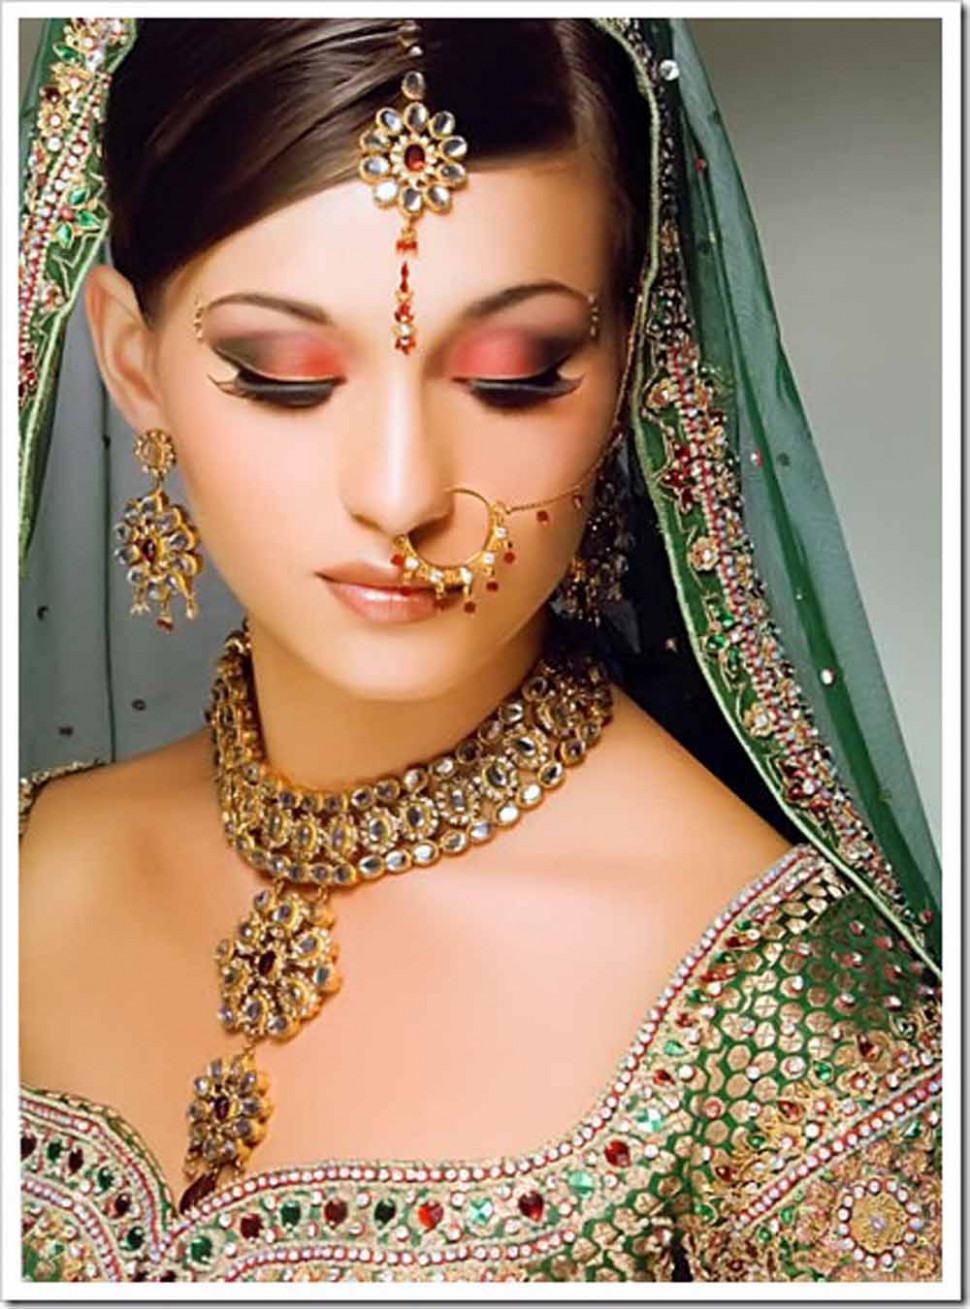 The Indian Bridal Eye Makeup - India's Wedding Blog ...